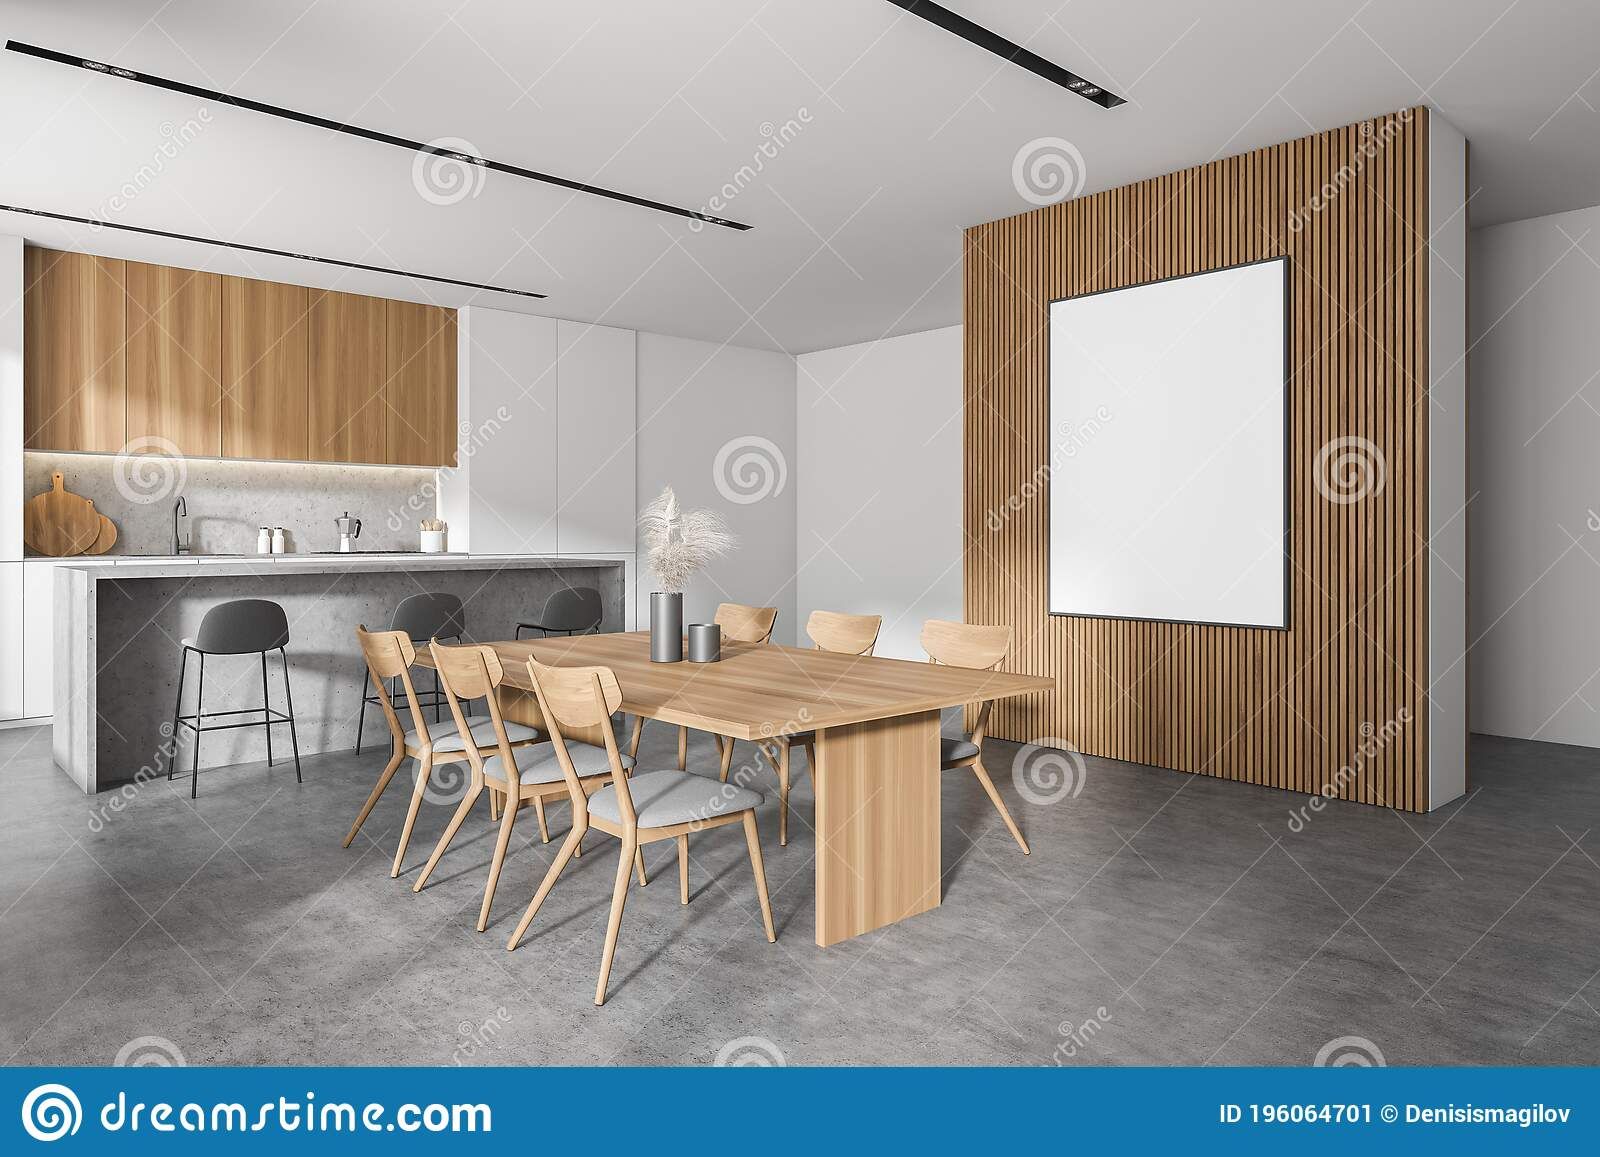 White And Wood Kitchen Corner Table And Poster Stock Illustration Illustration Of Expensive Dining 196064701